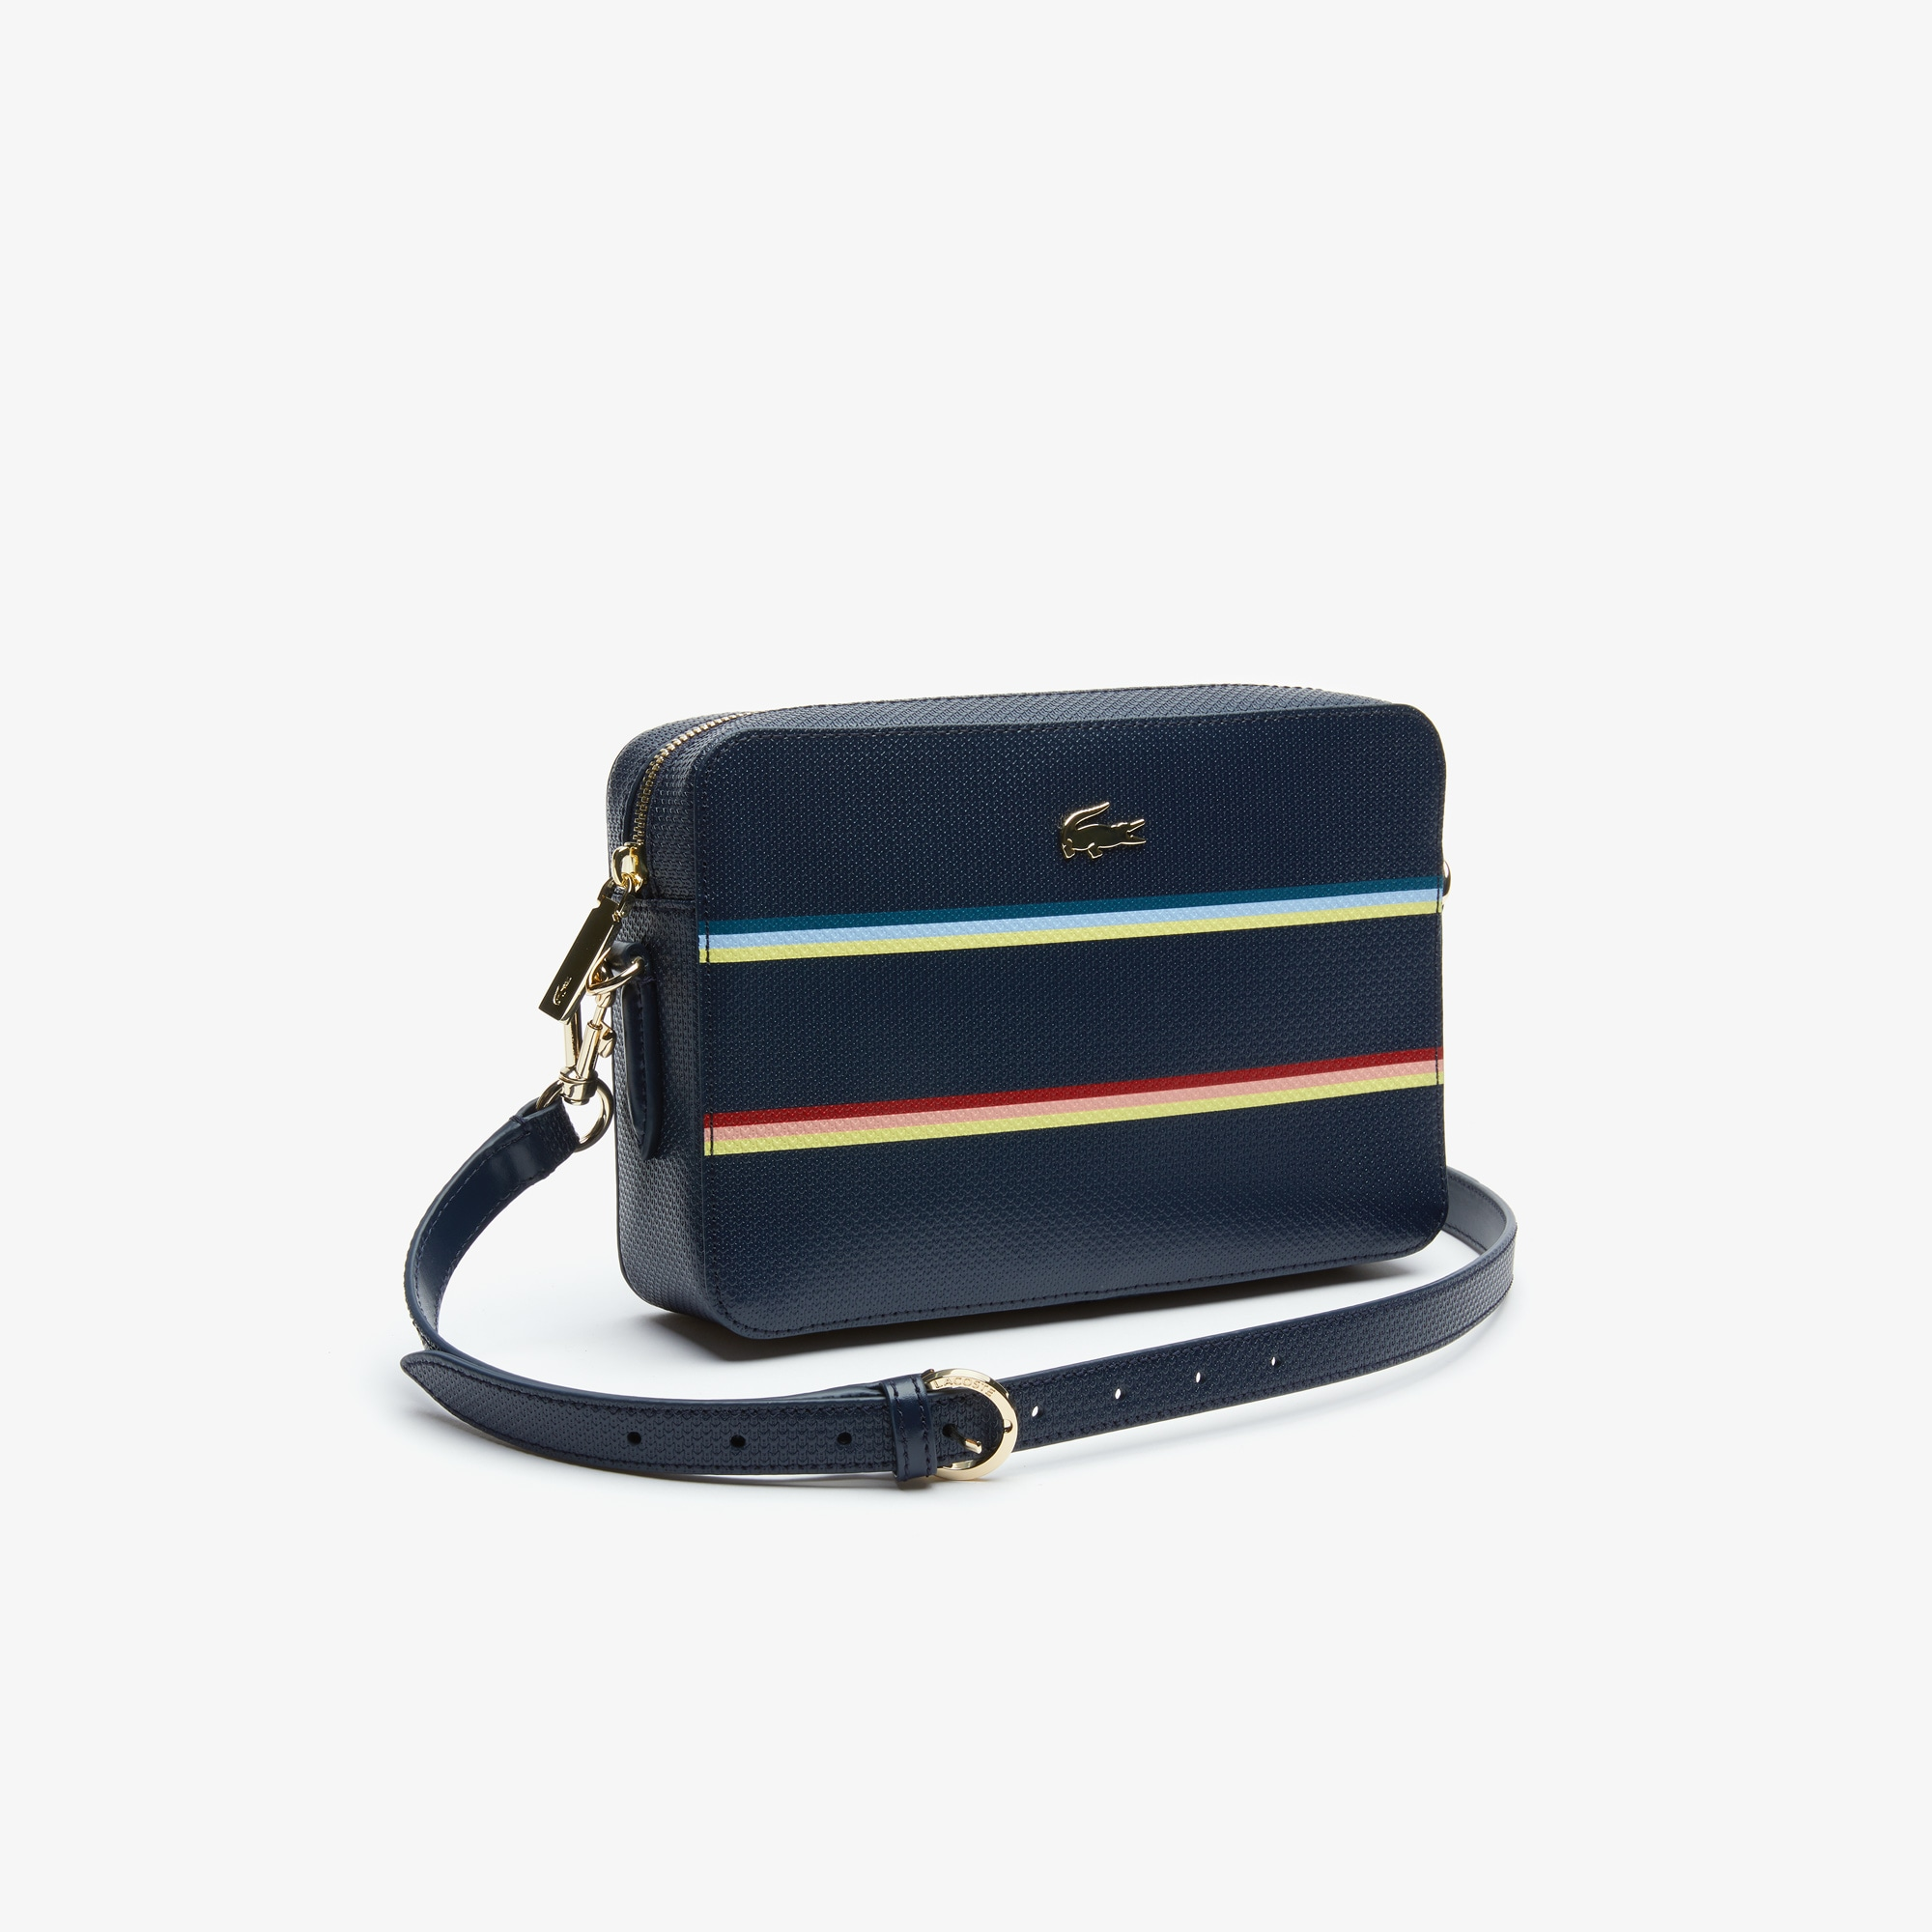 85f851335bef Women s Chantaco colour Striped Piqué Leather Square Shoulder Bag ...